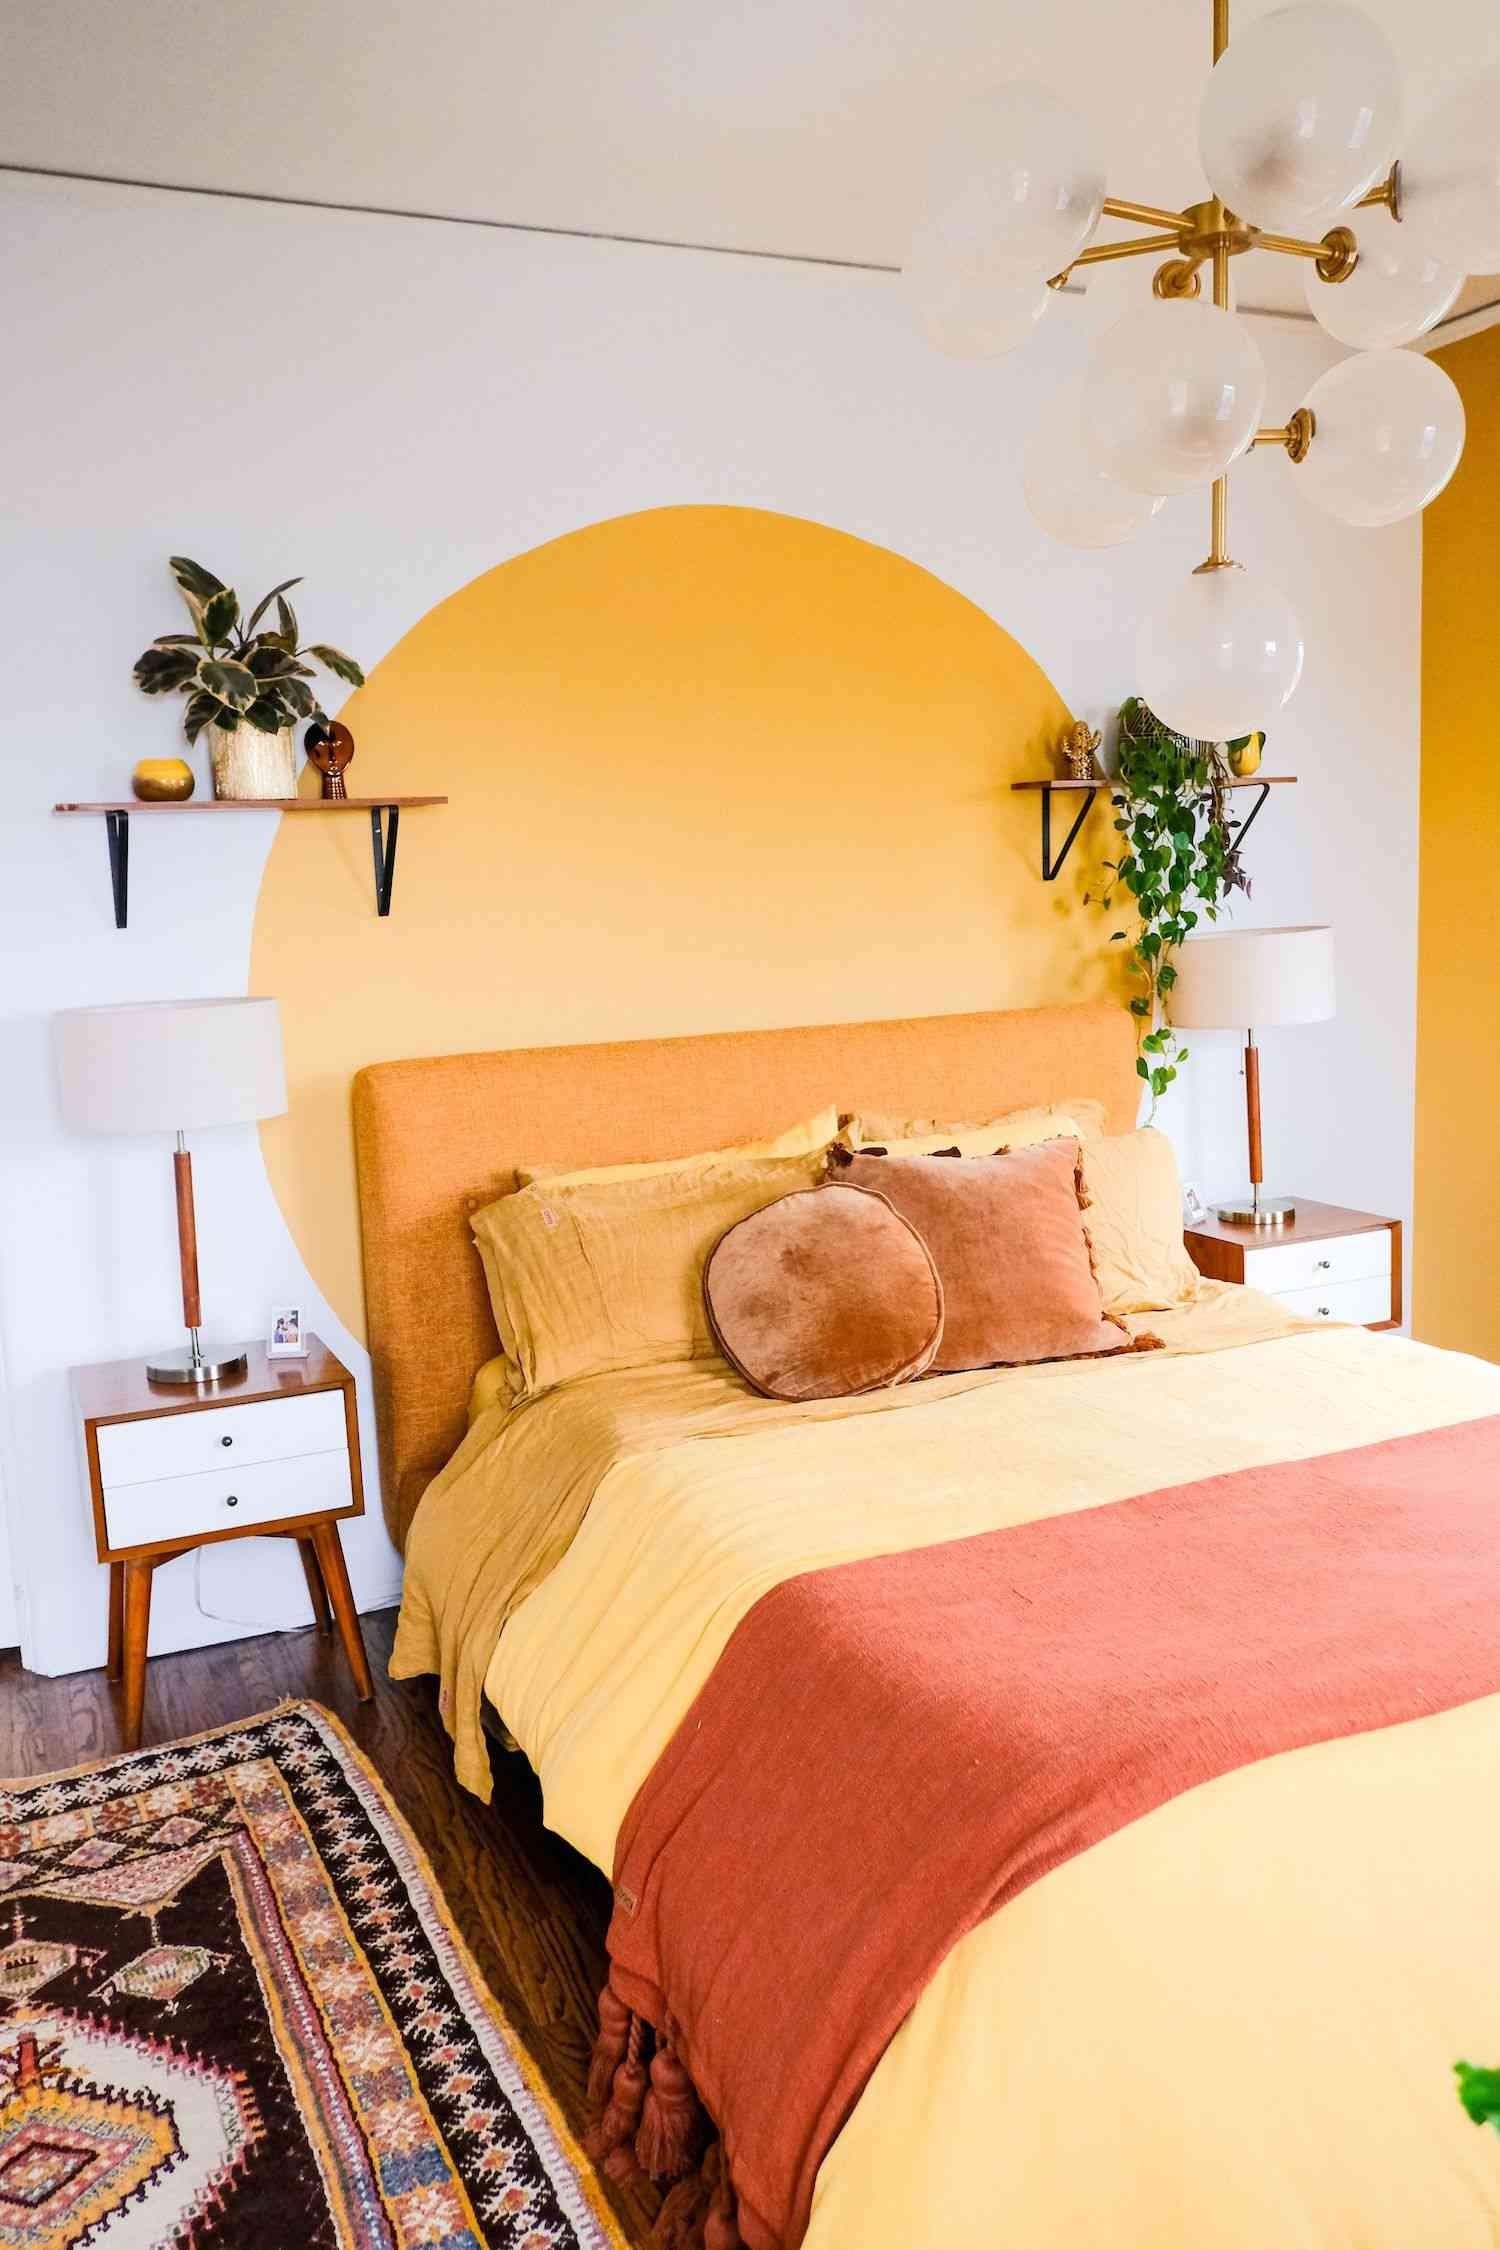 bedroom with yellow circle mural on white wall, yellow bedsheets, floating shelf with plants